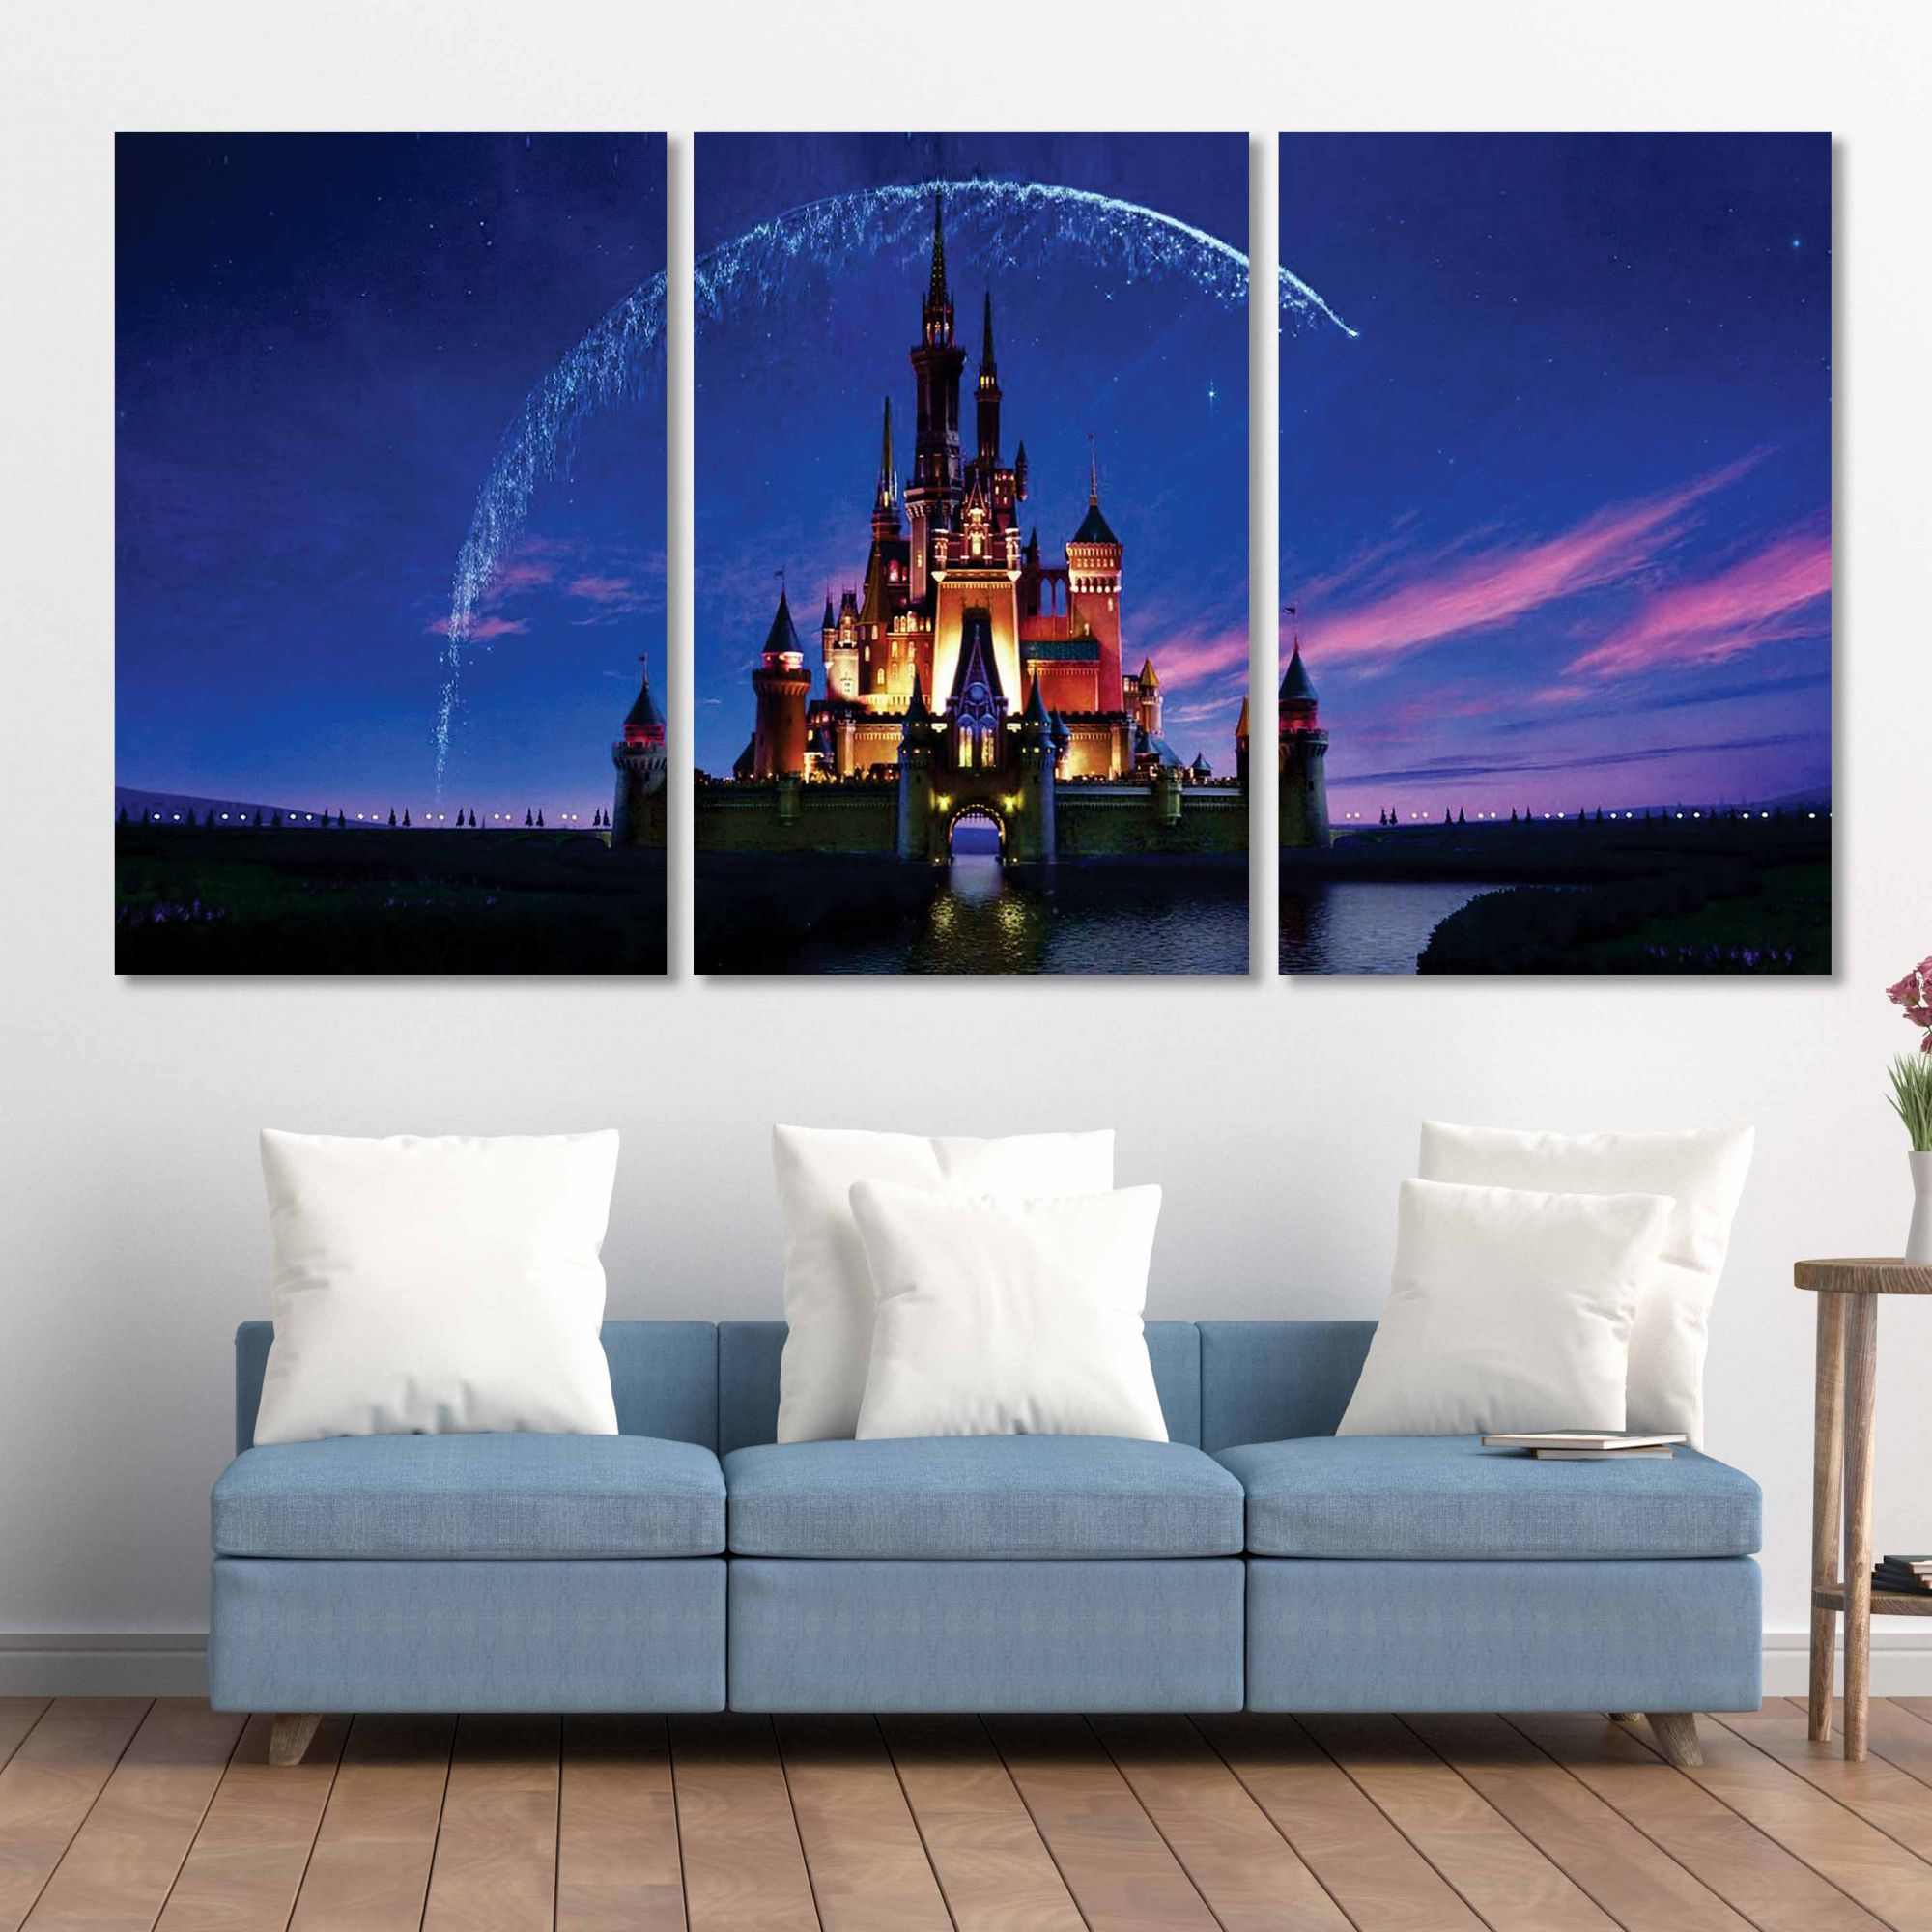 Placas decorativas em PVC - Kit 3unid. Disney